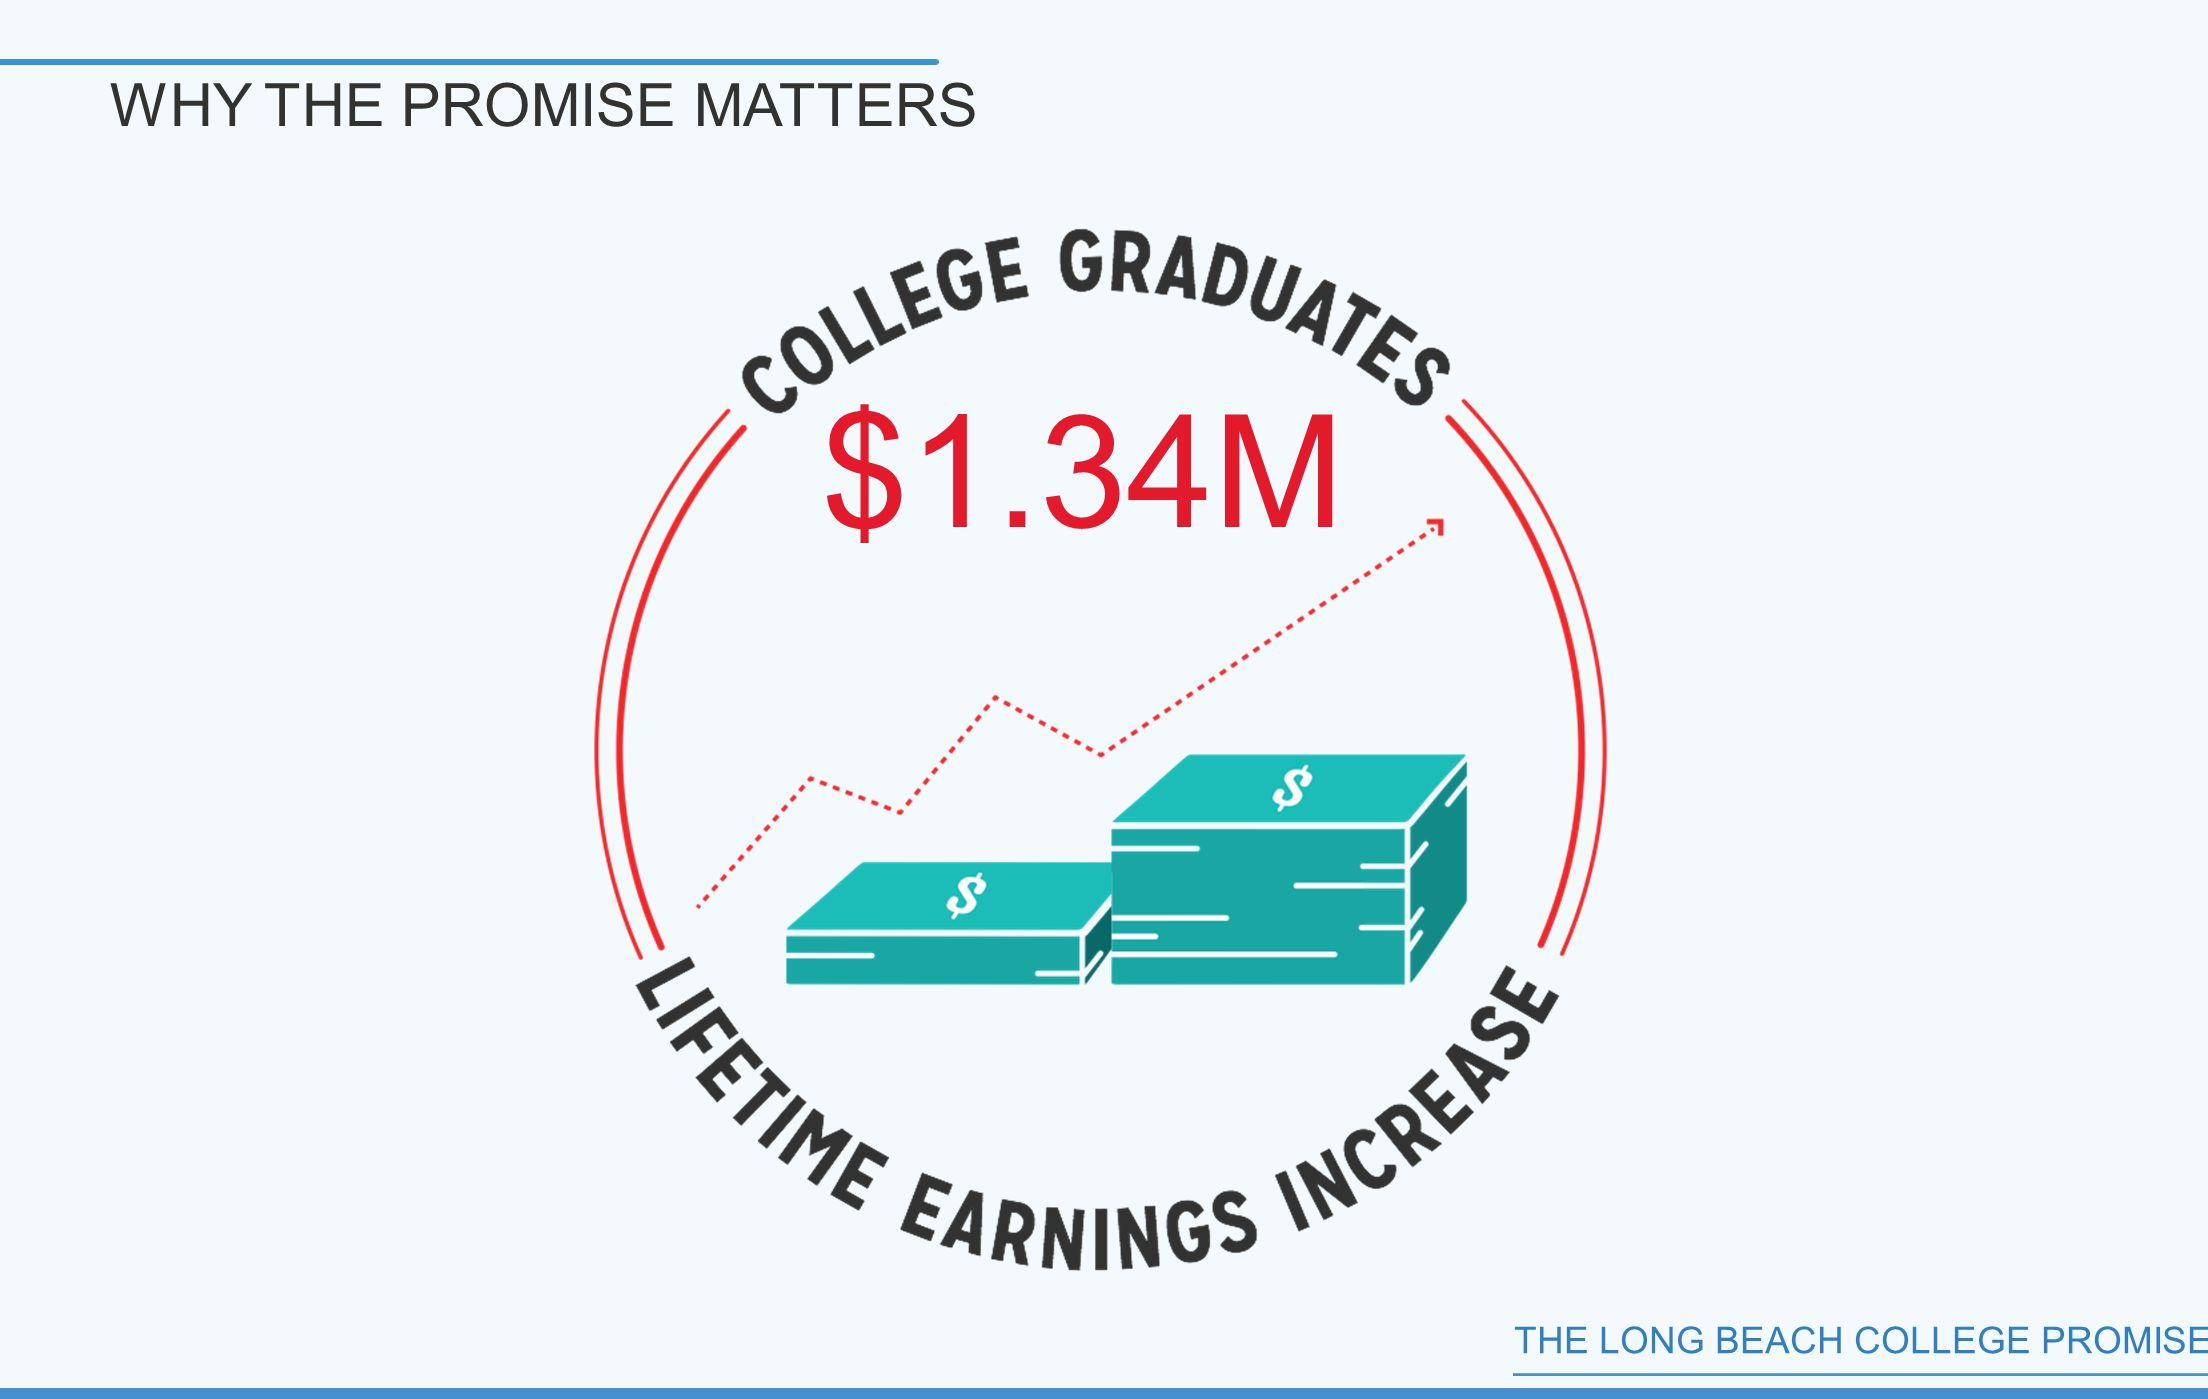 THE LONG BEACH COLLEGE PROMISE $1.34M WHY THE PROMISE MATTERS